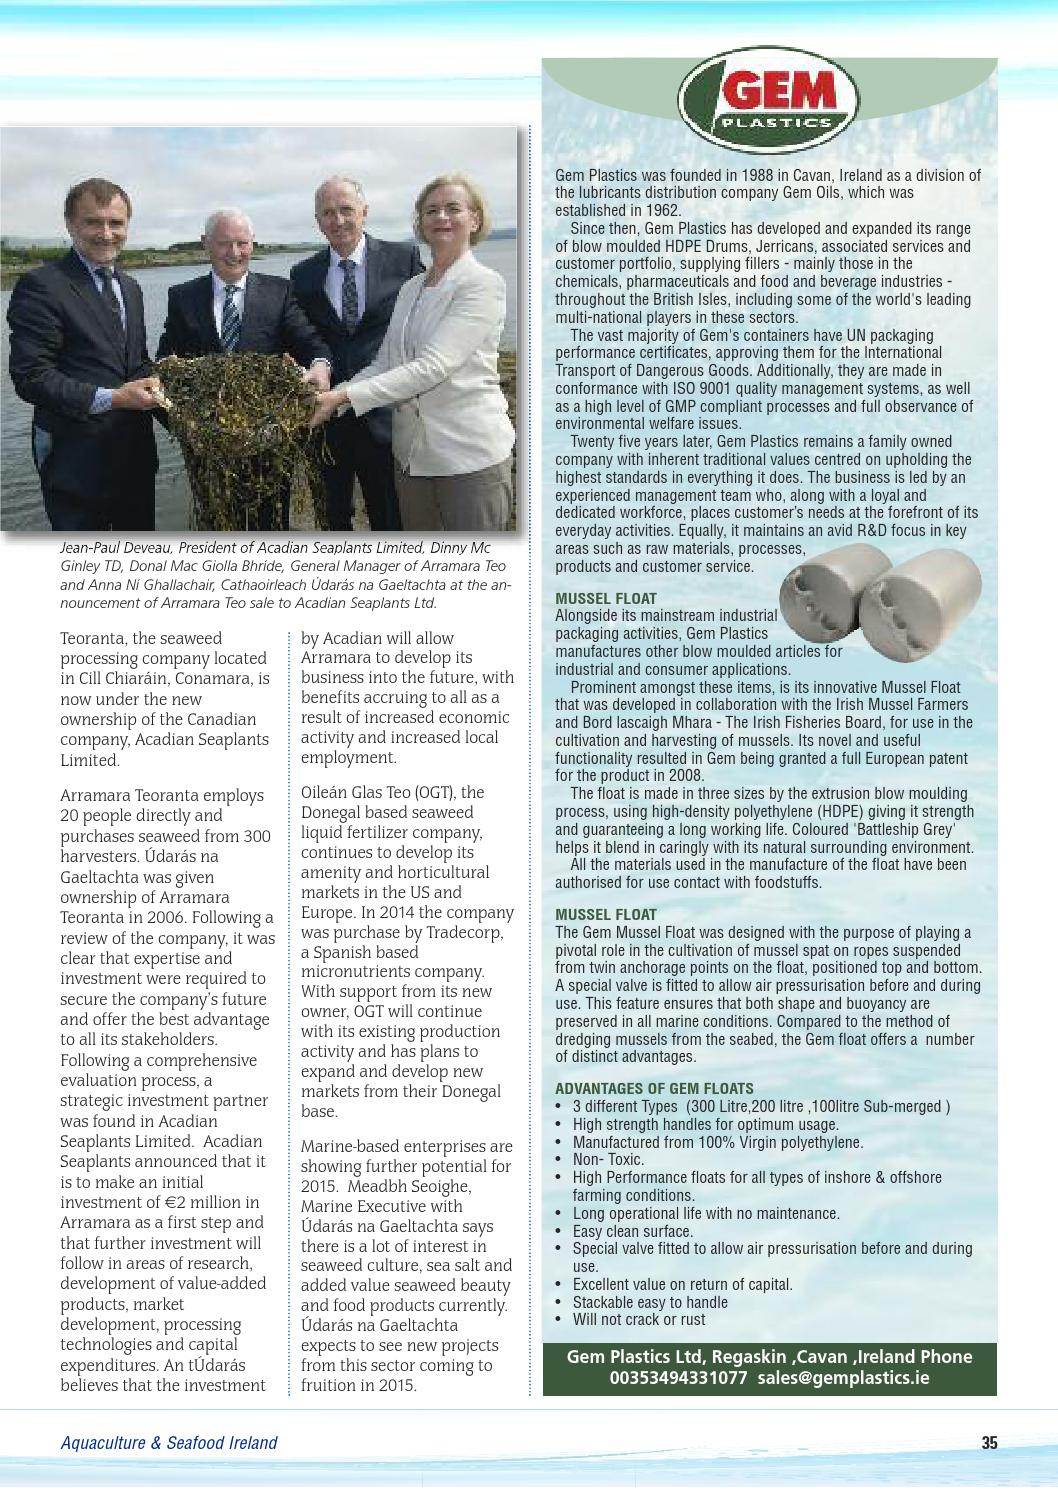 Aquaculture & seafood ireland yearbook 2014 by Inshore